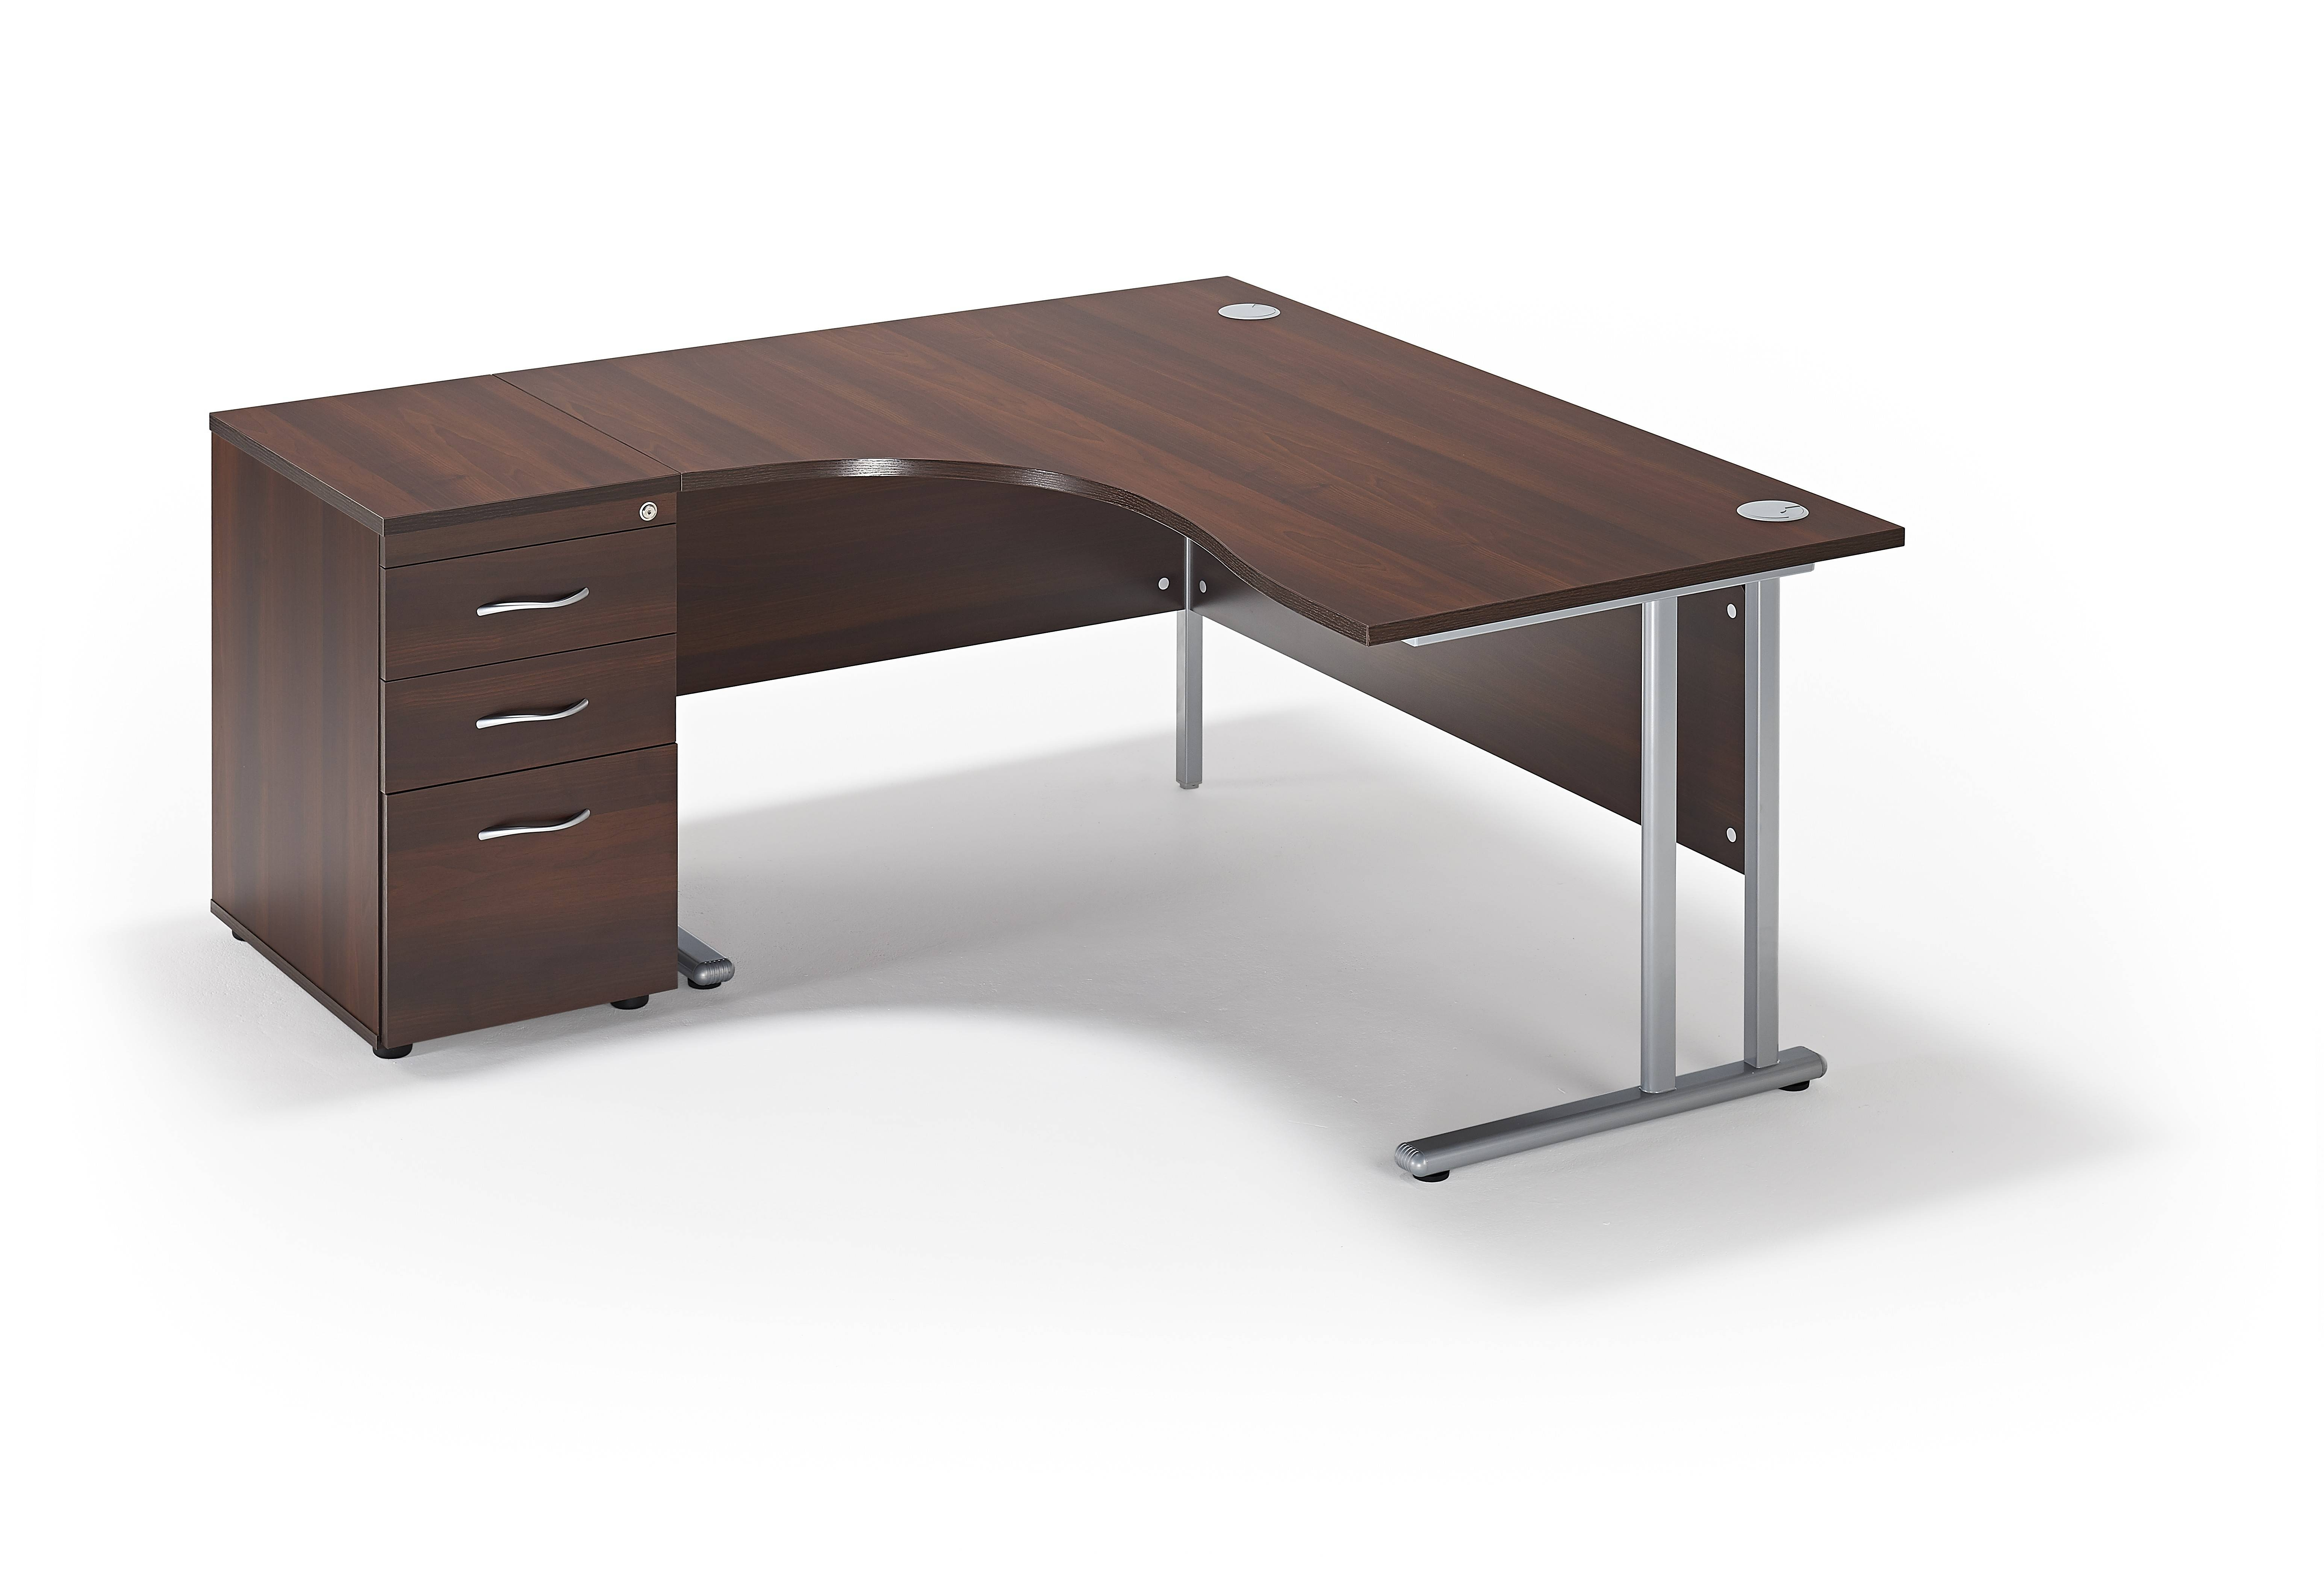 Office Furniture, Office Desks, Office Chairs, Office Storage Inside Curve Coffee Tables (View 25 of 30)